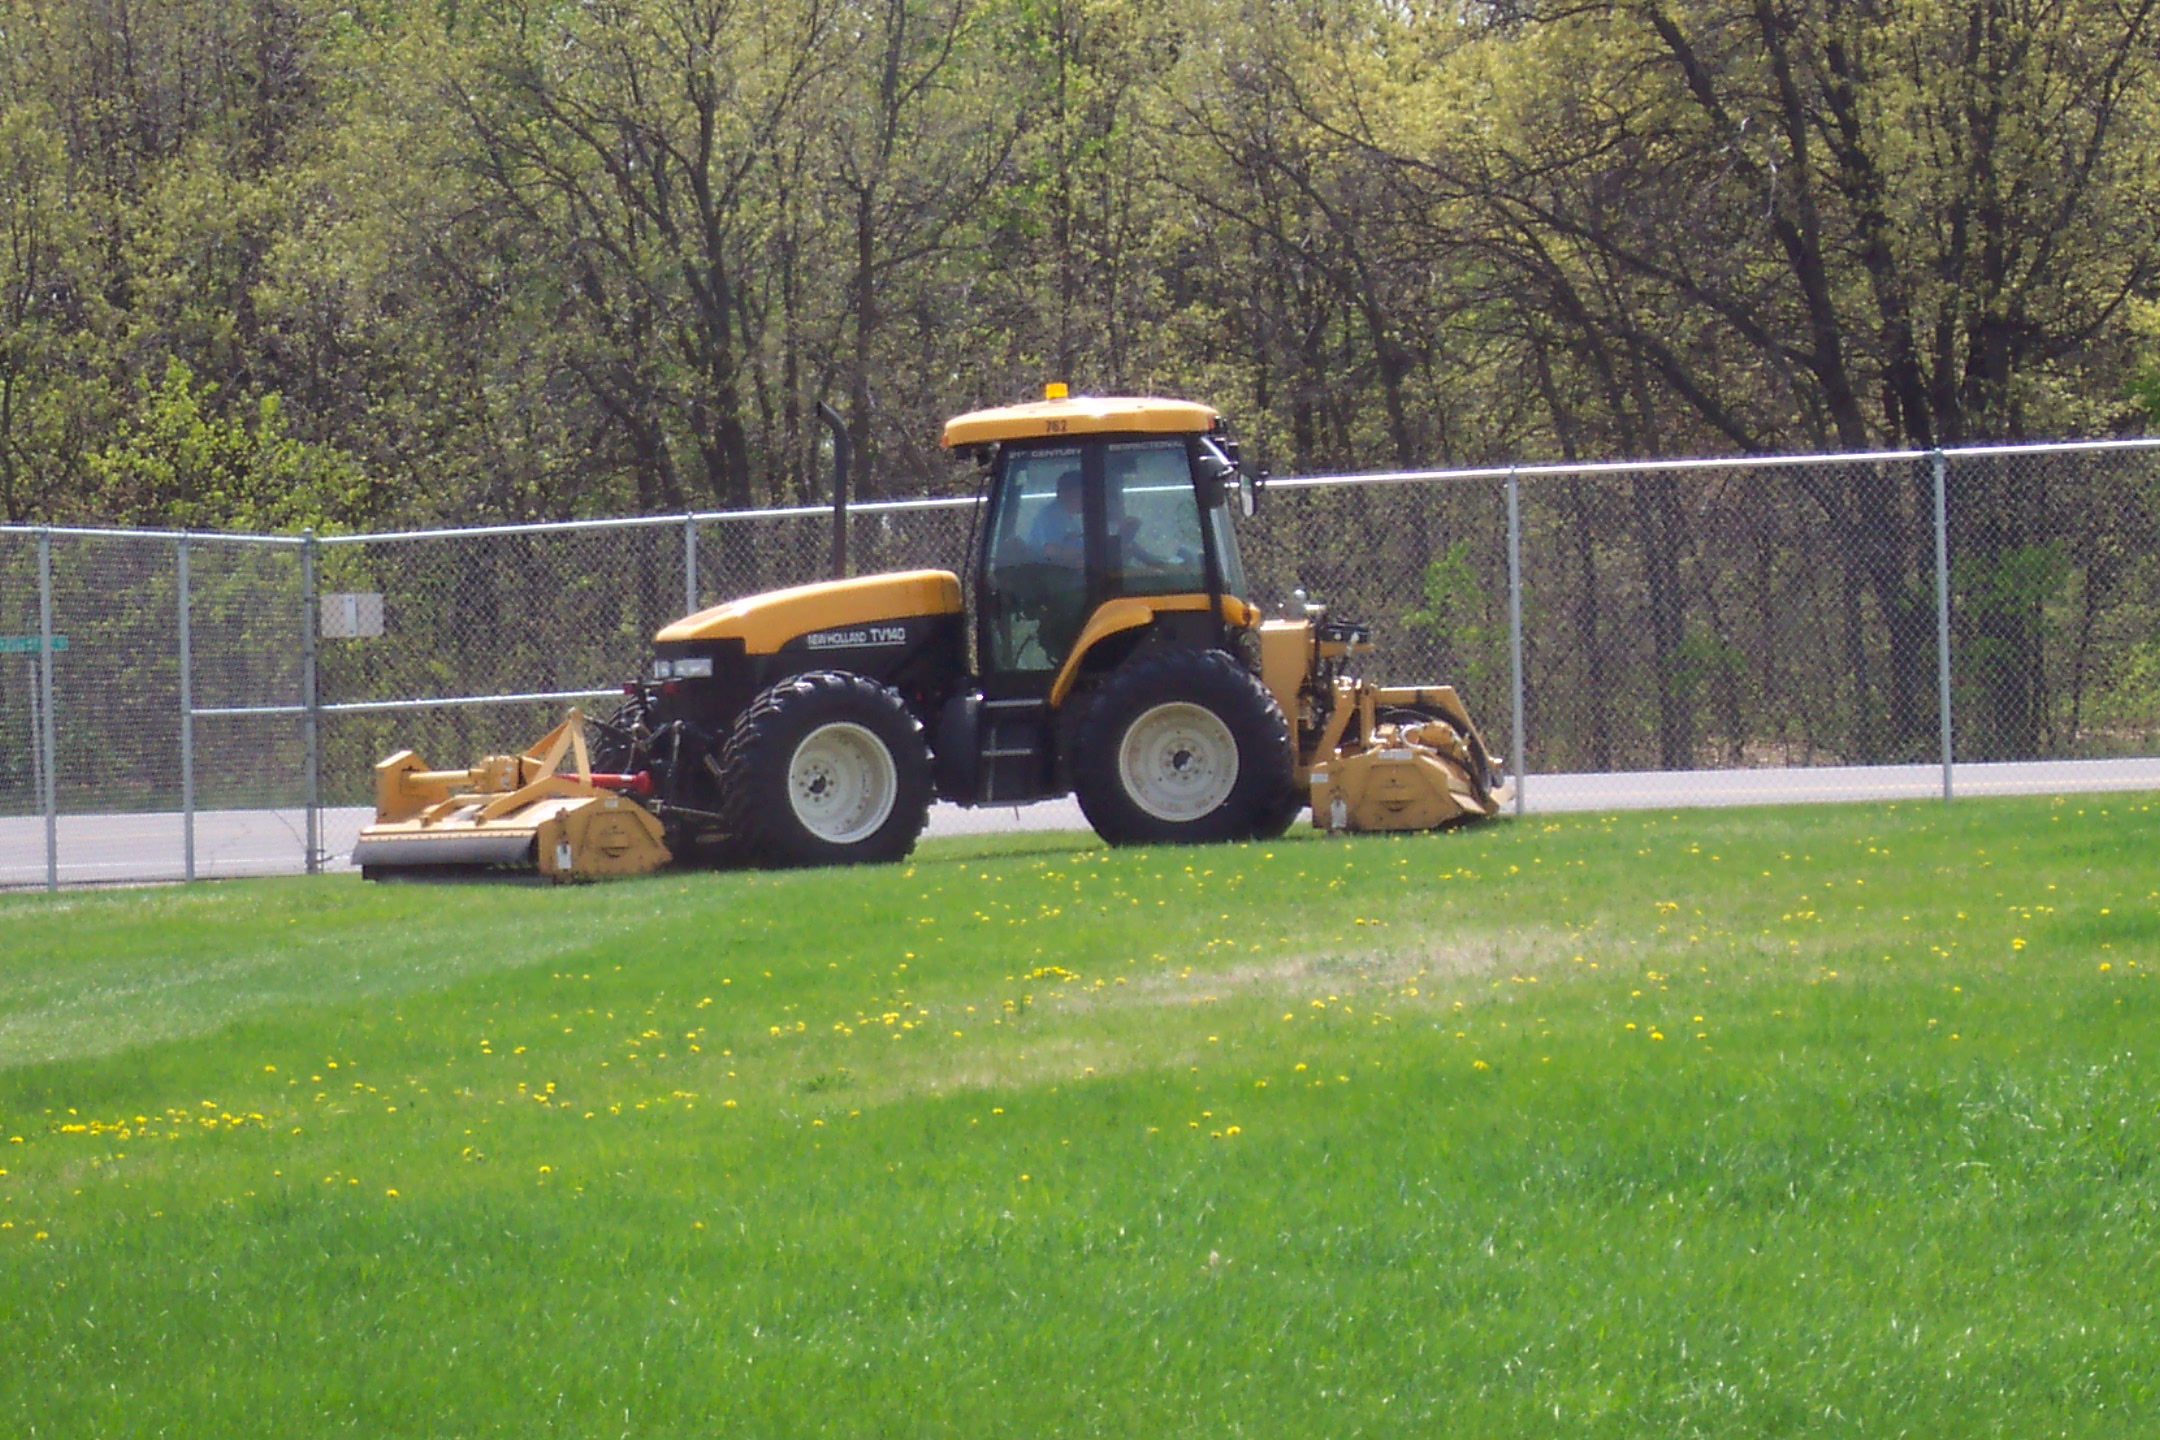 New Holland Tractor mowing